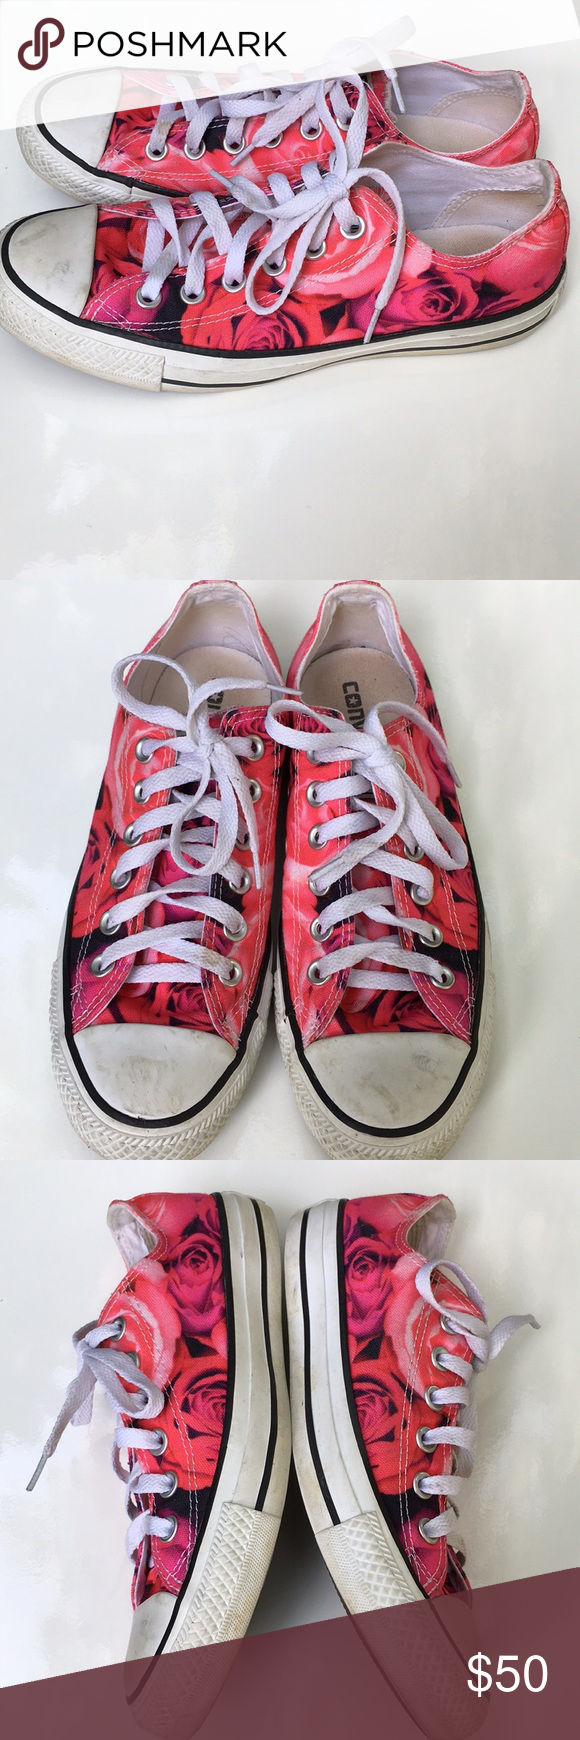 aa7665e580c Converse Roses Pattern size 7 Literally worn once to a picnic. A little  dirty in